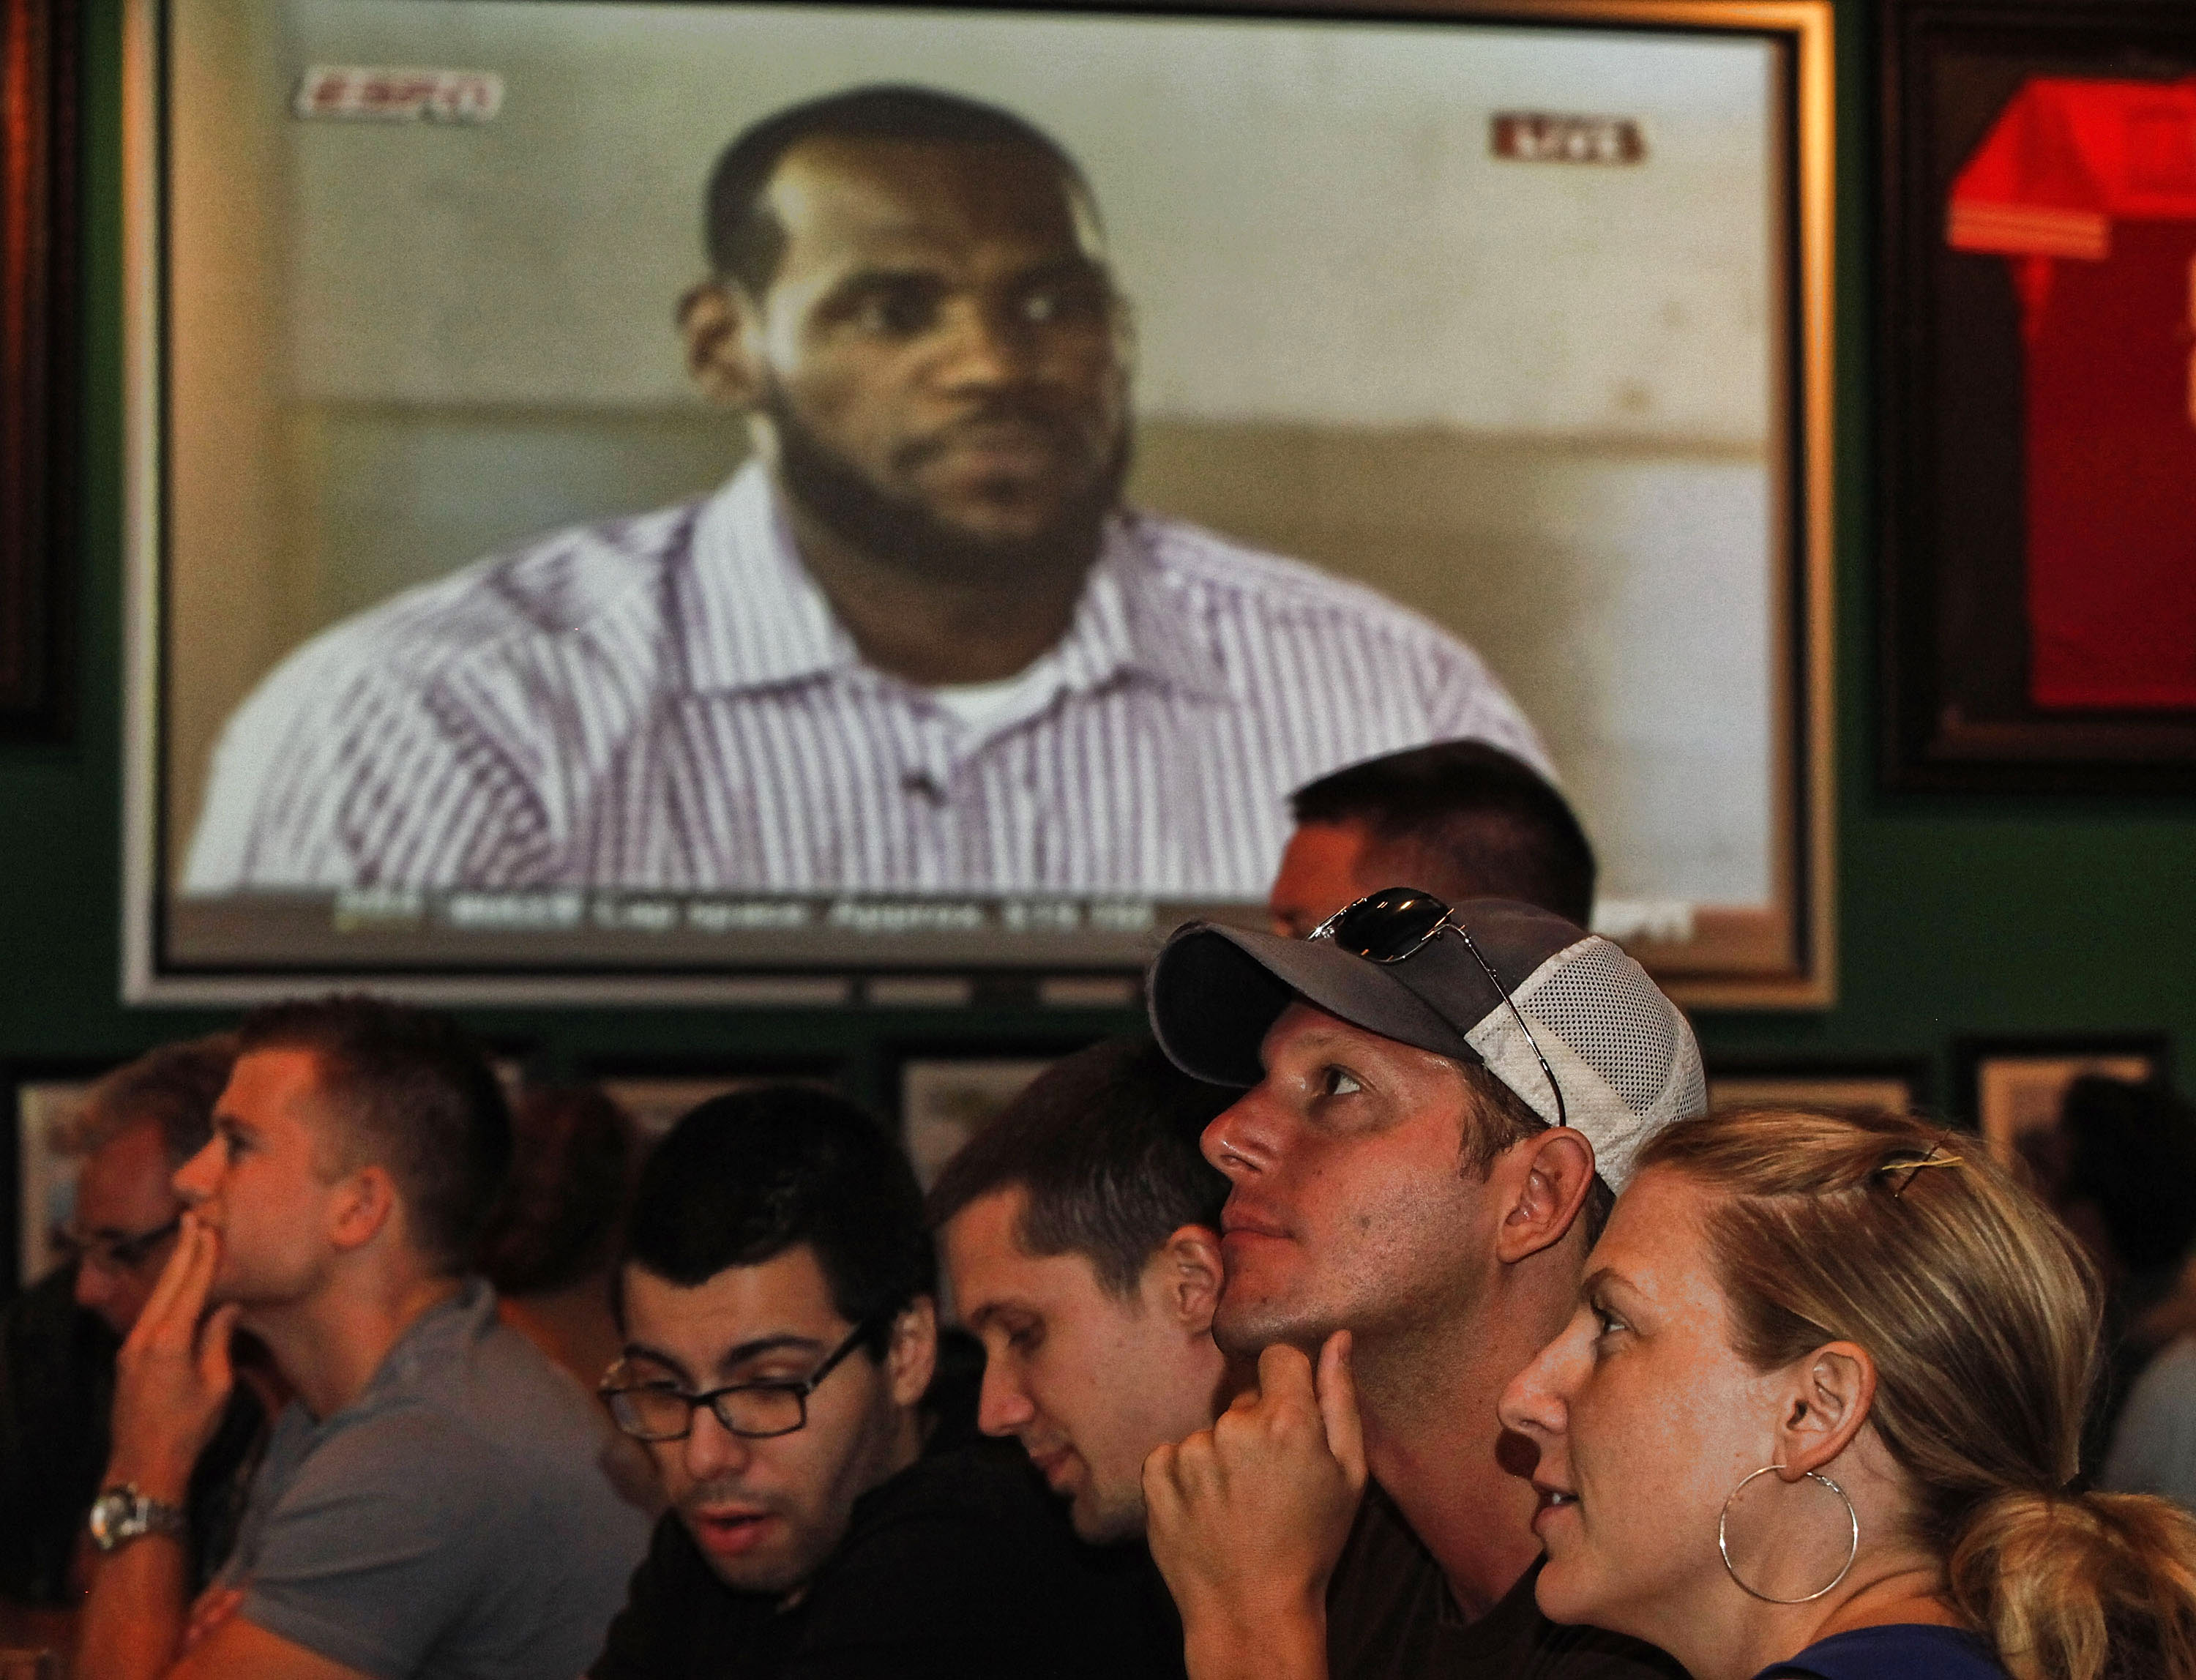 BOCA RATON, FL - JULY 08:  LeBron James announces he will join the Miami Heat during a televised interview as fans look on at Duffy's July 8, 2010 in Boca Raton, Florida.  (Photo by Marc Serota/Getty Images)